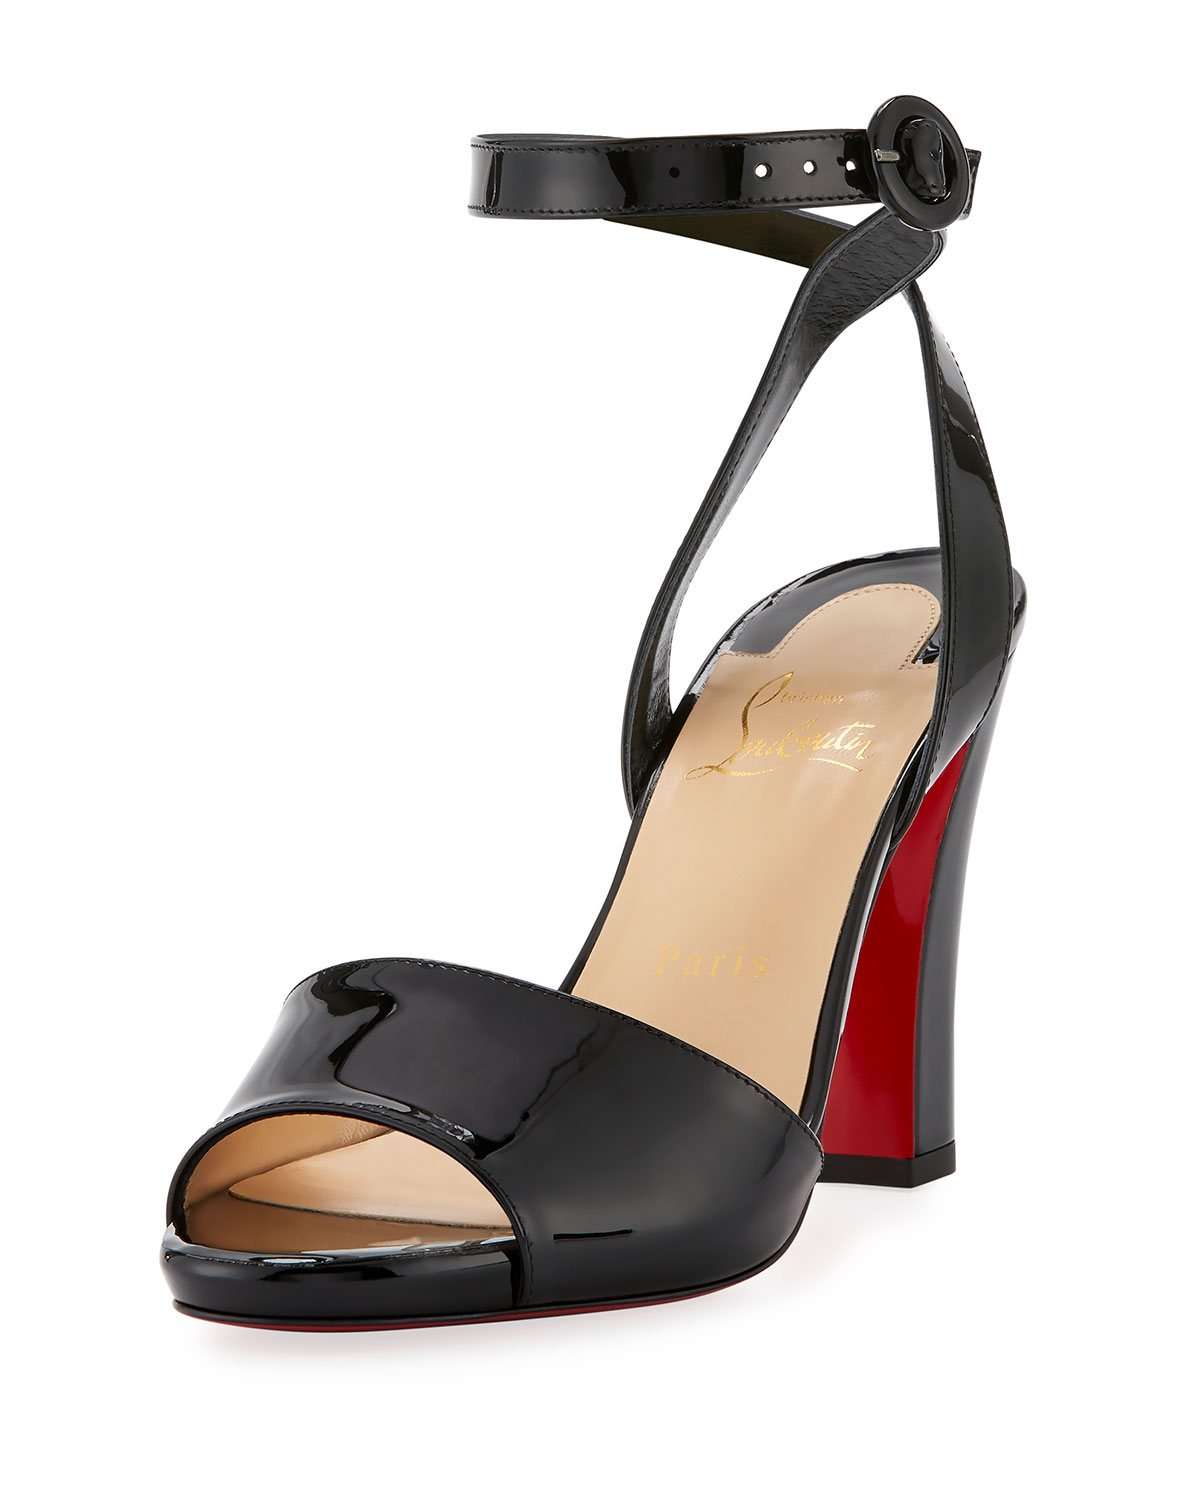 e0013c60c30 Havana Forties Patent Red Sole Sandal